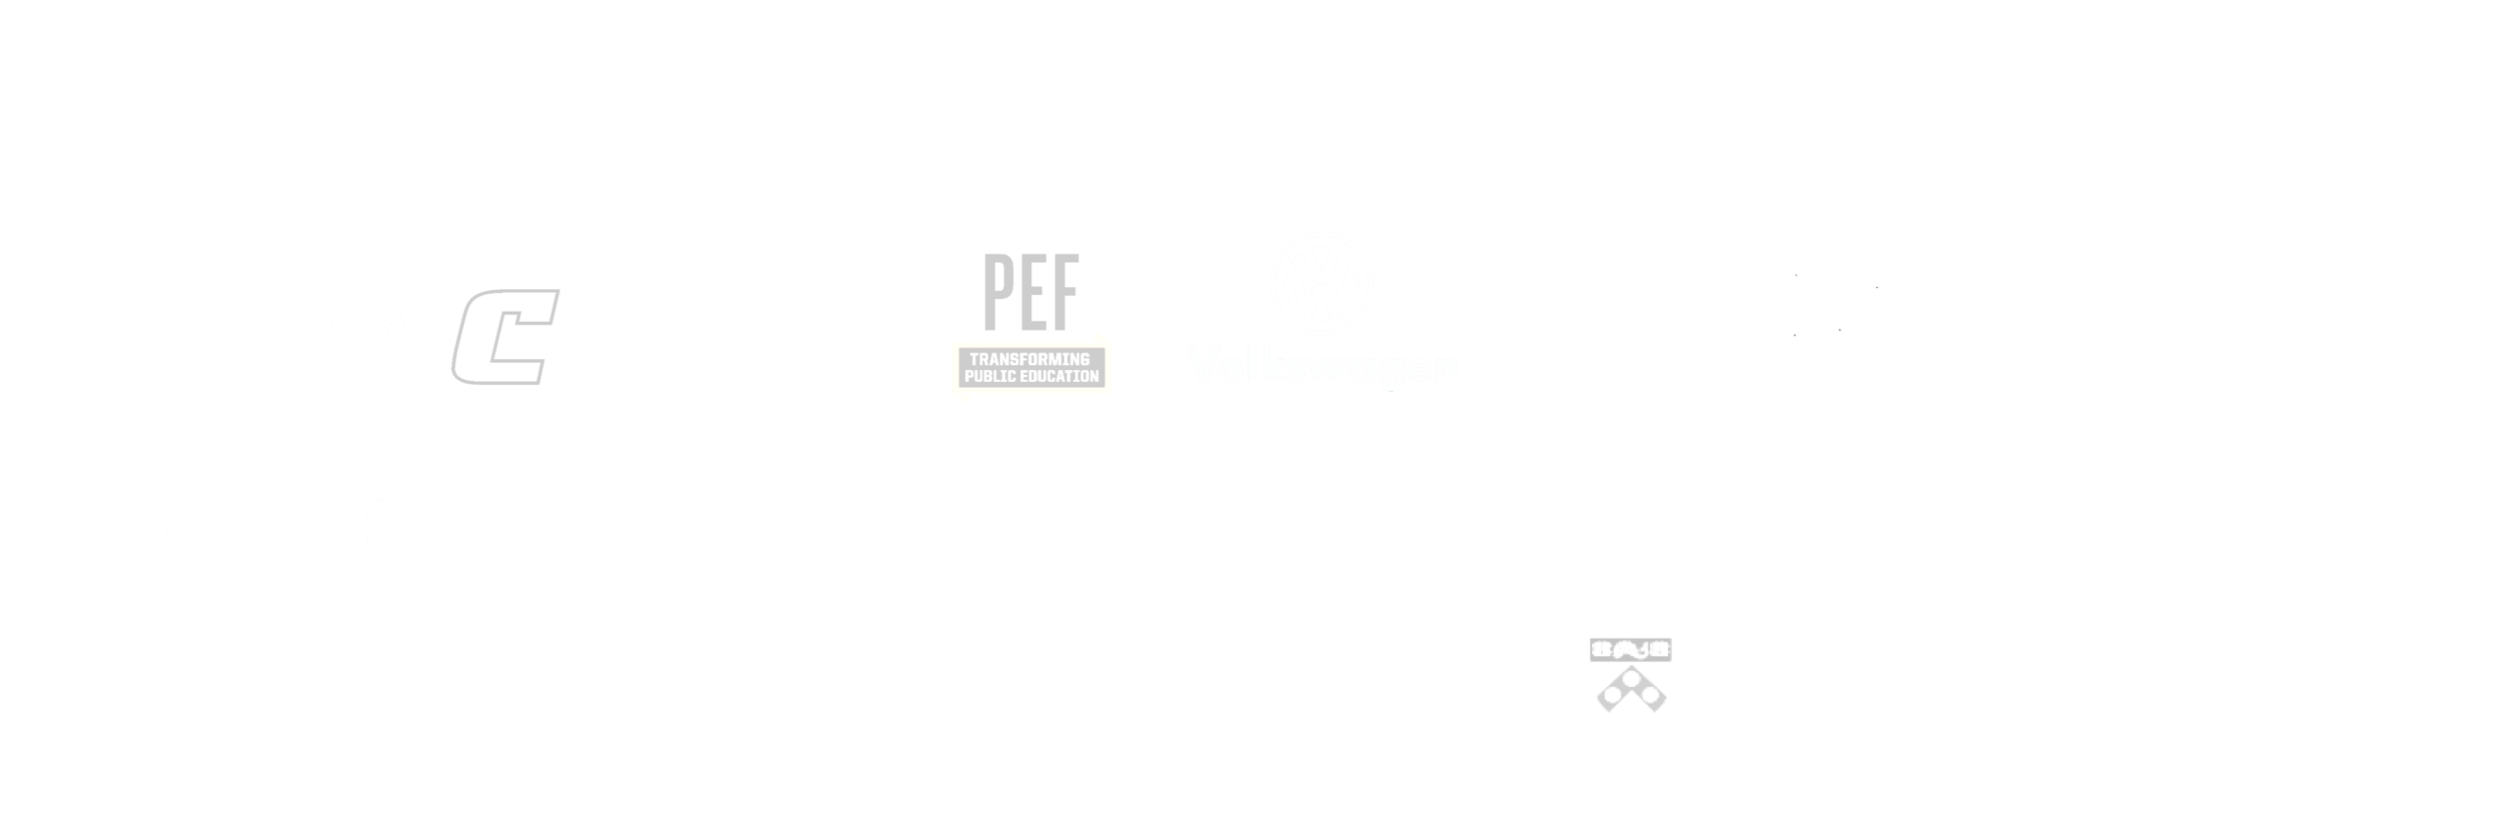 UpdatedLearnLogos.png